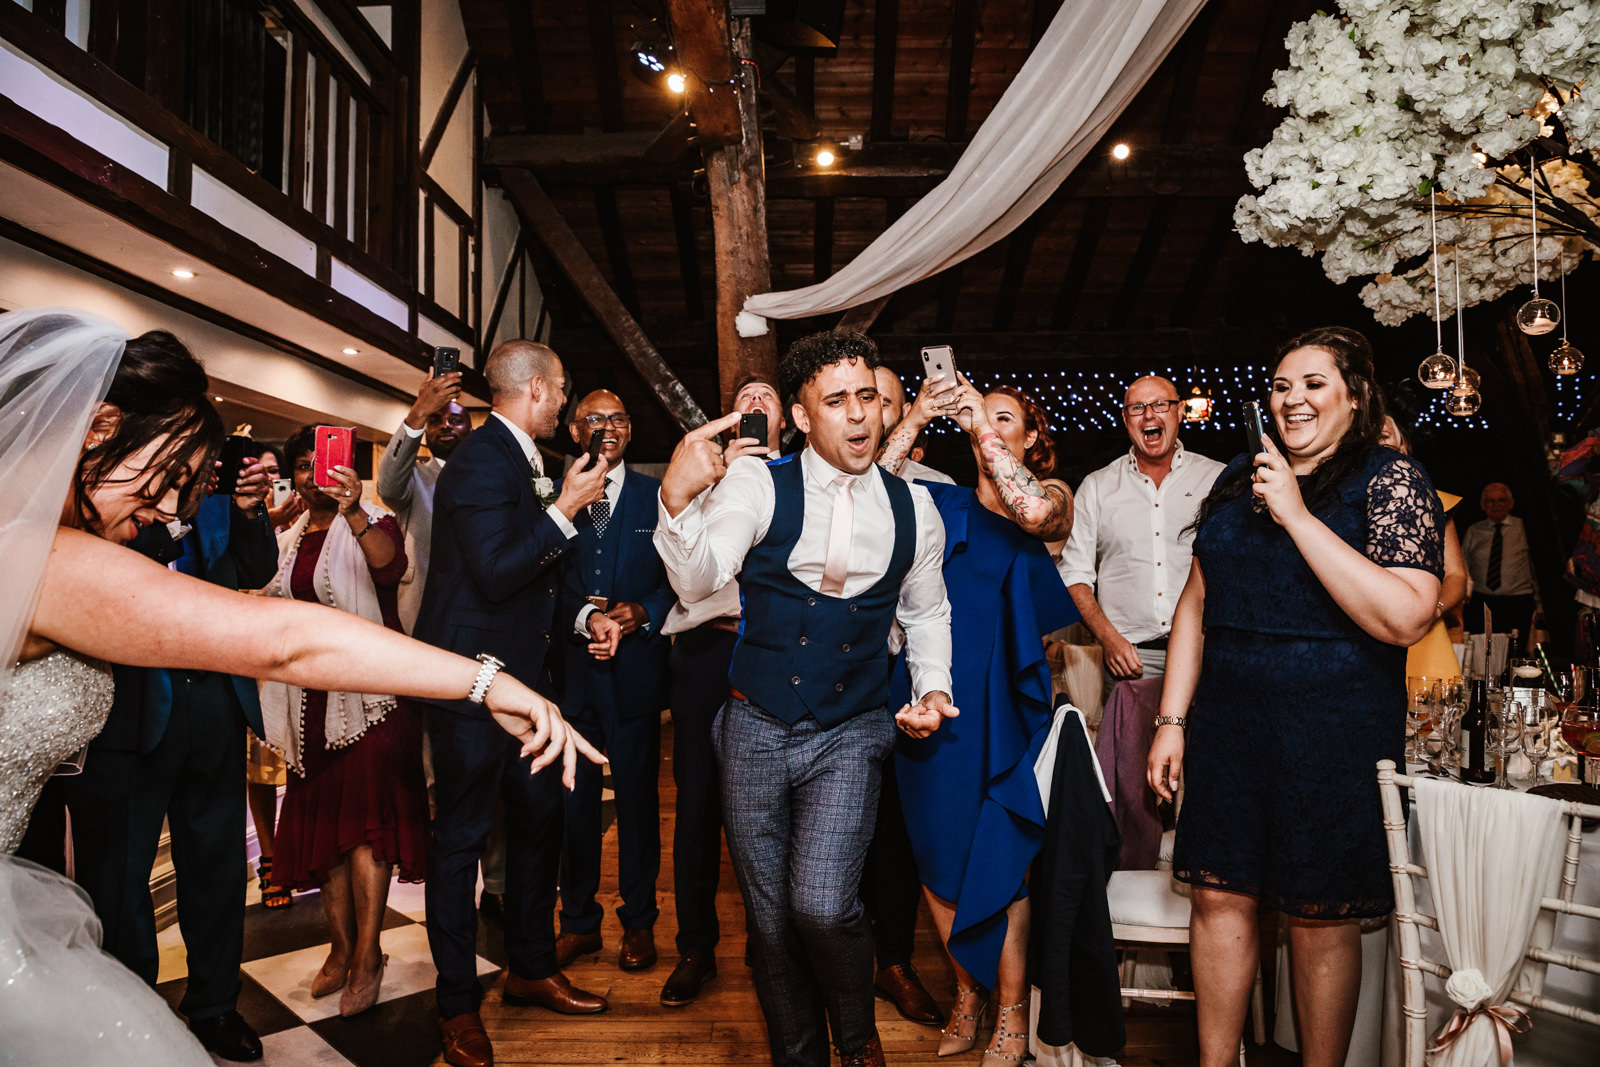 Bride and groom dancing at Rivington Barn